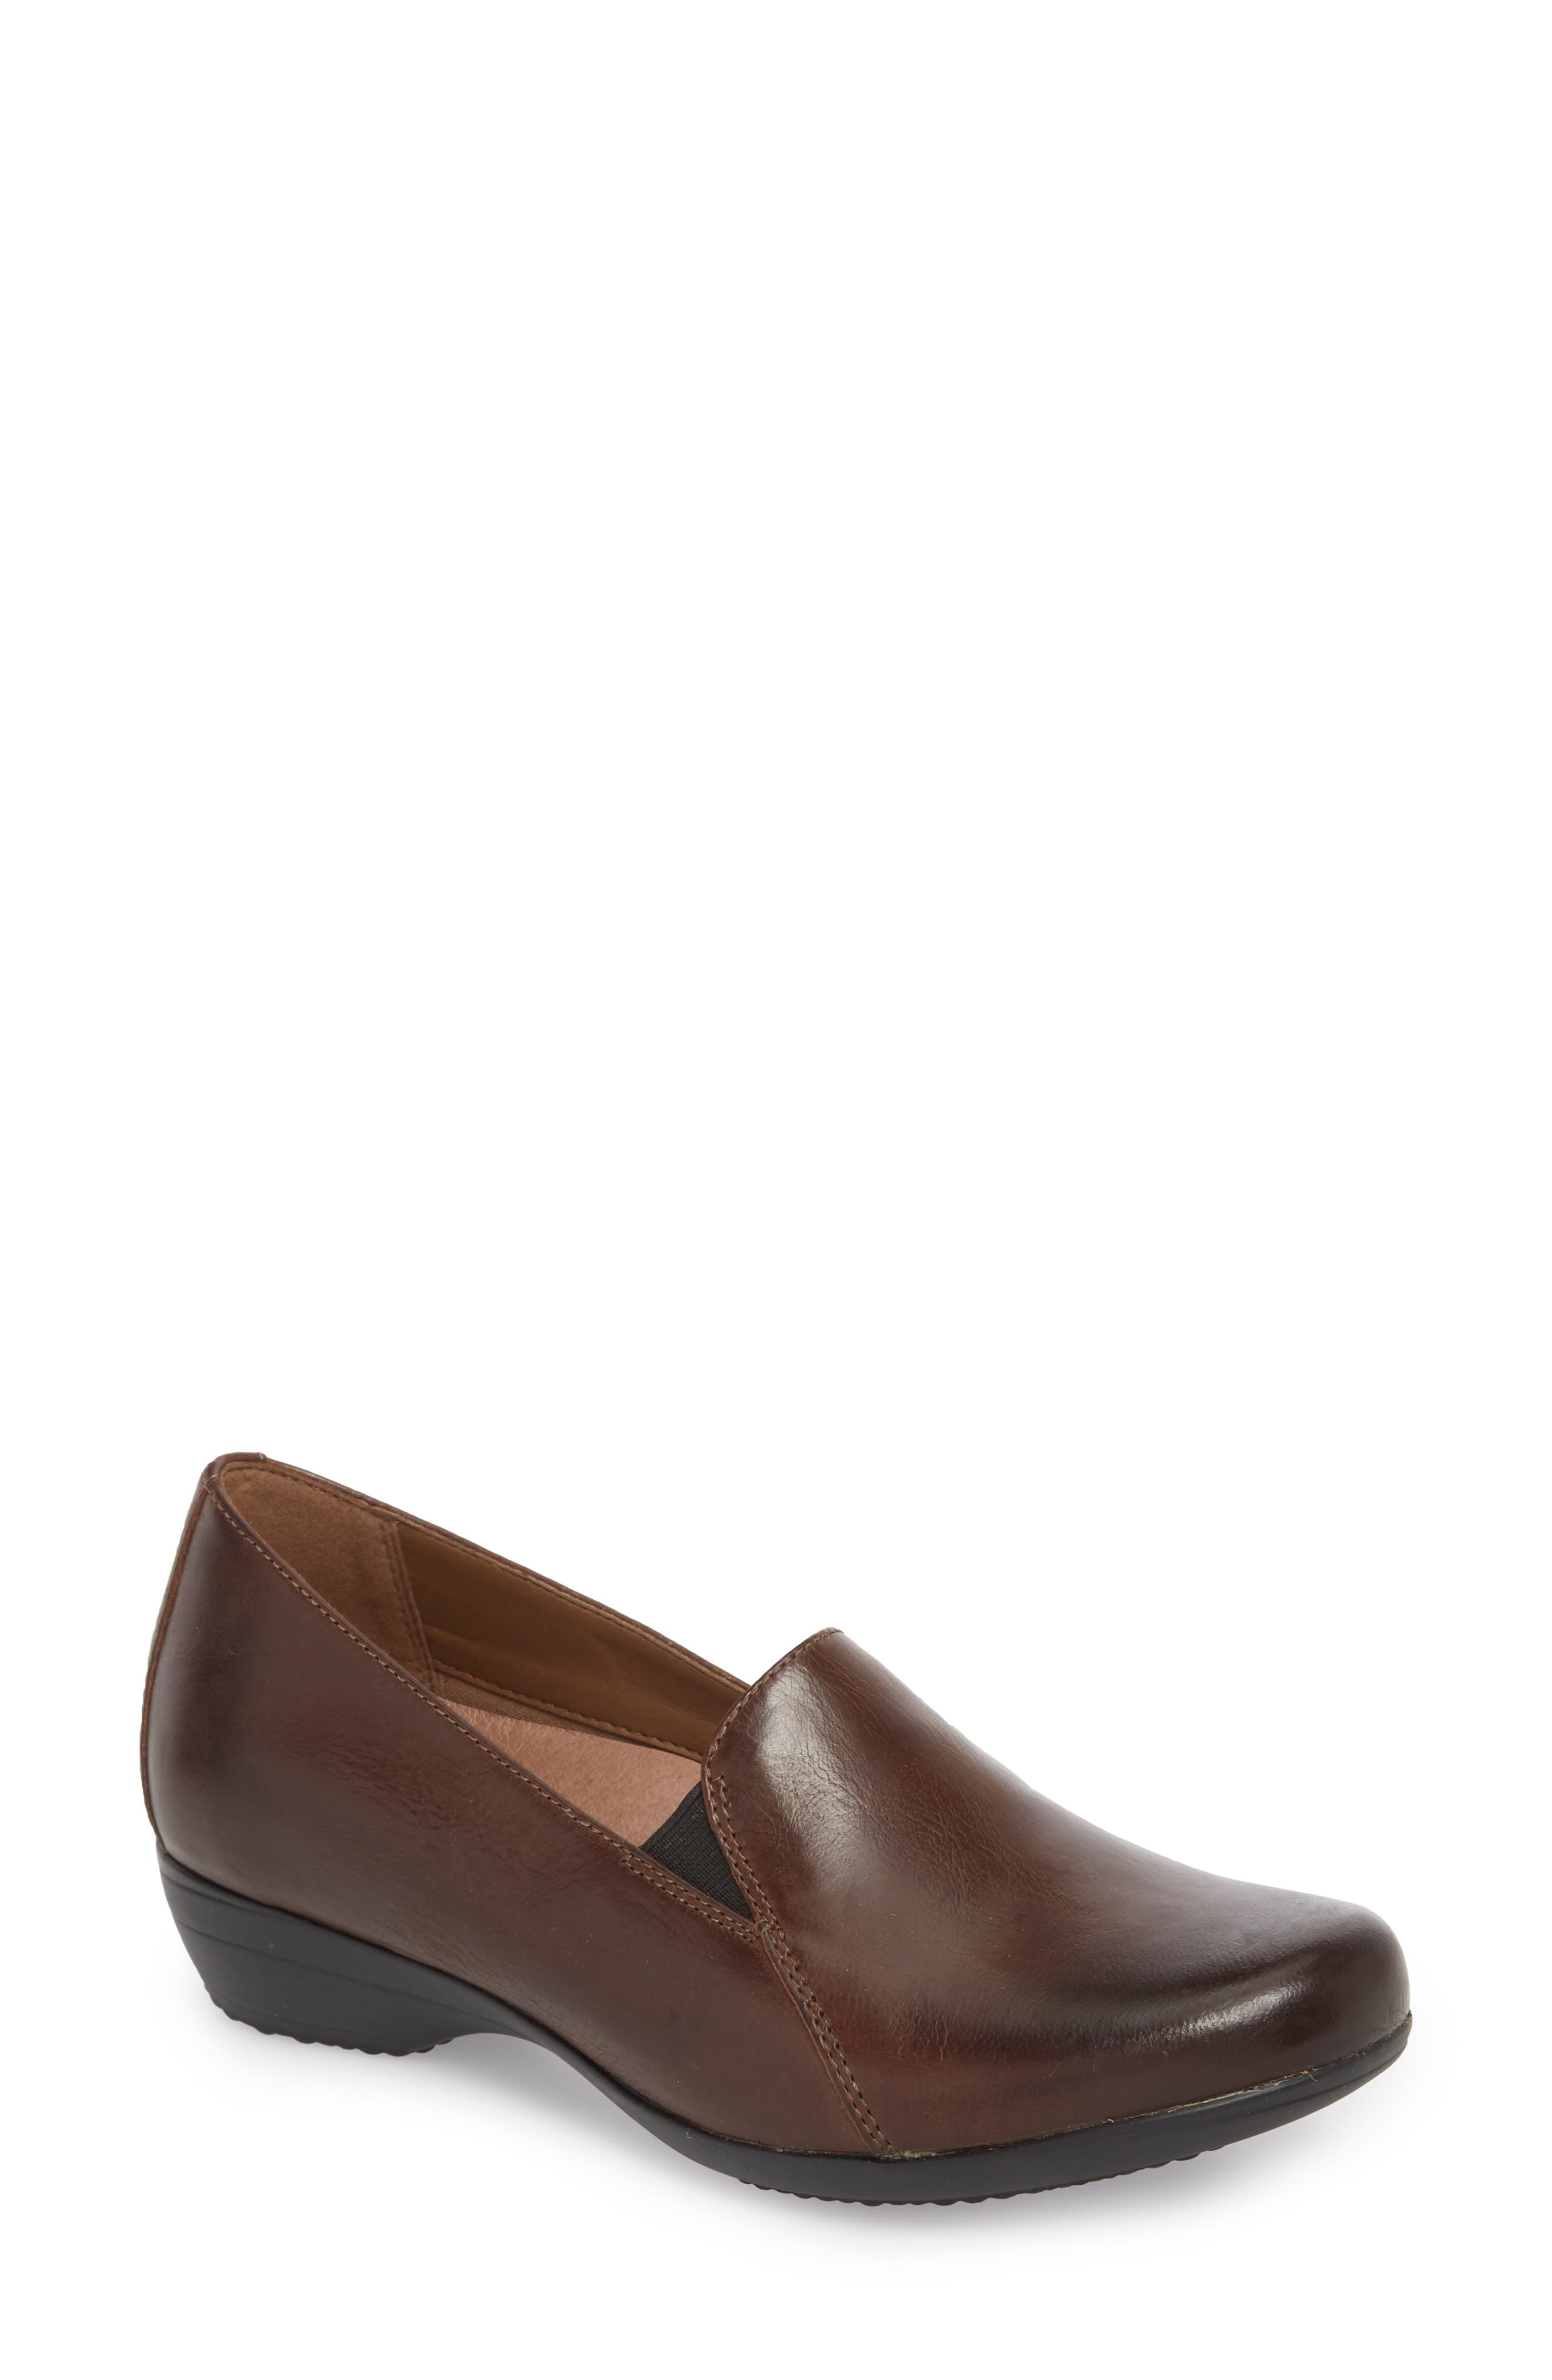 Dansko Farah Loafer-7- Brown